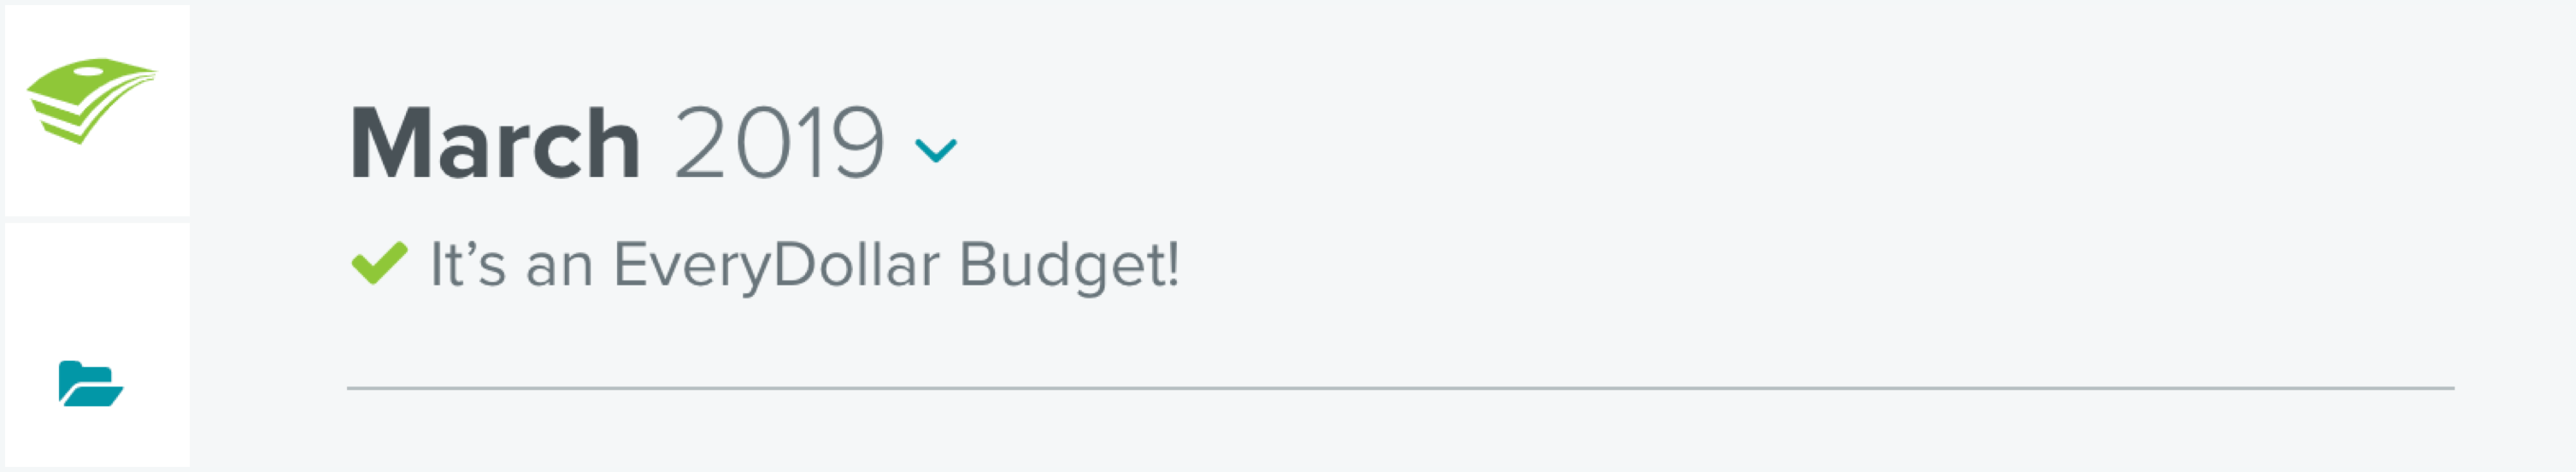 Confirmation that a user budgeted to zero